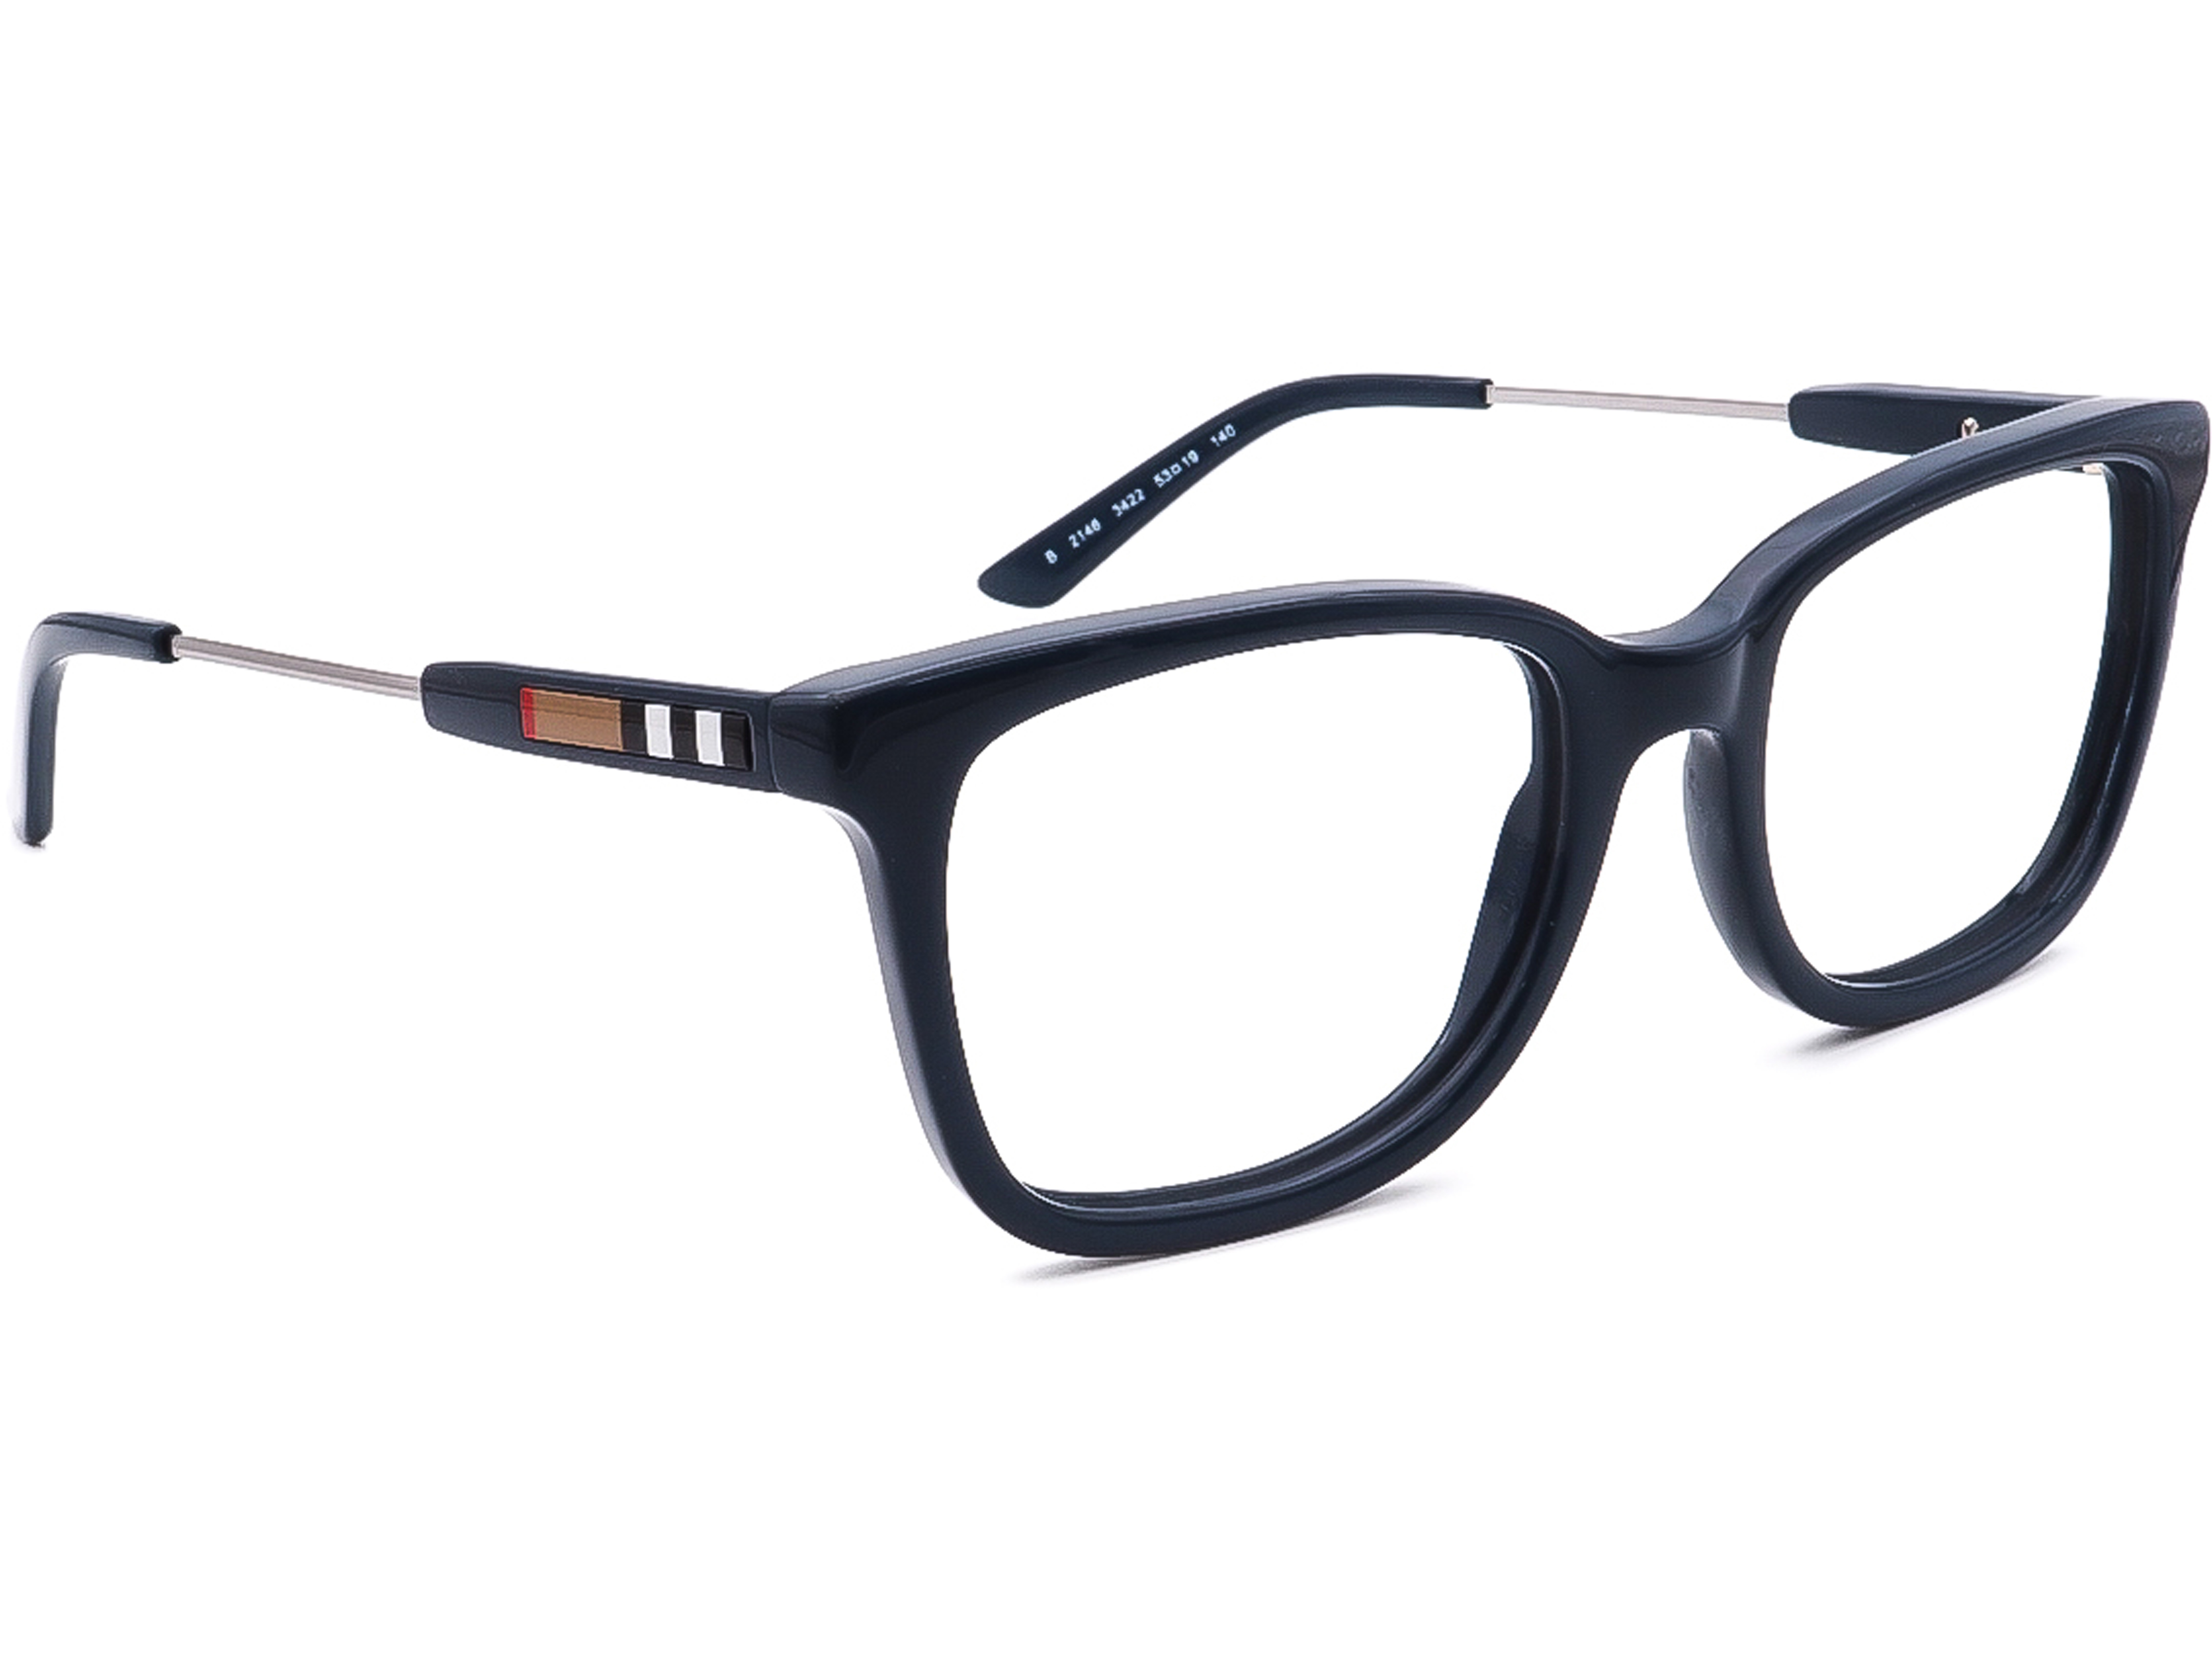 Burberry B 2146 3422 Eyeglasses